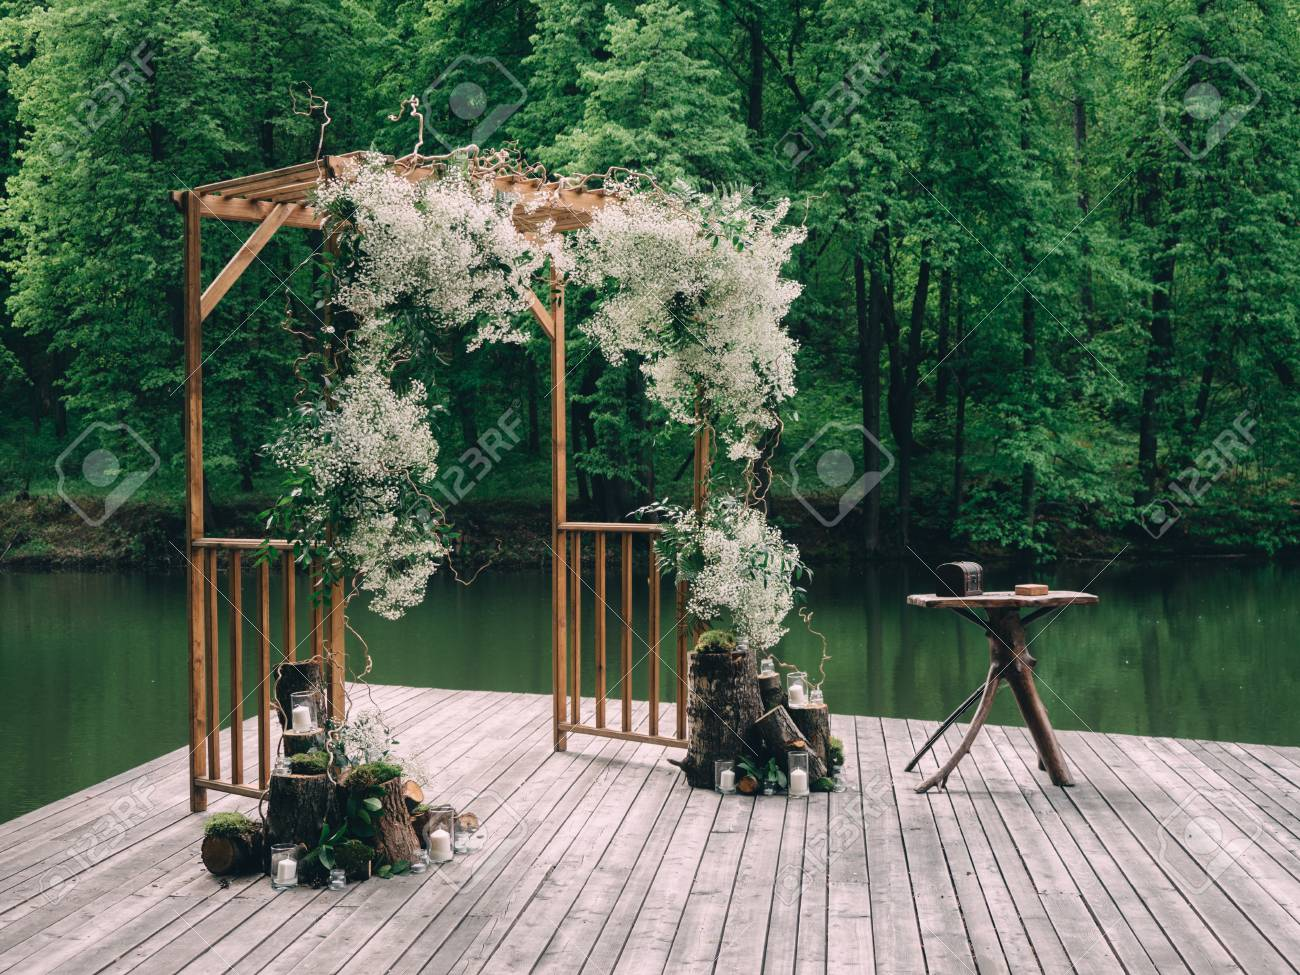 Rustic Wedding Arch.Romantic Rustic Wedding Ceremony Near River White Wooden Chairs